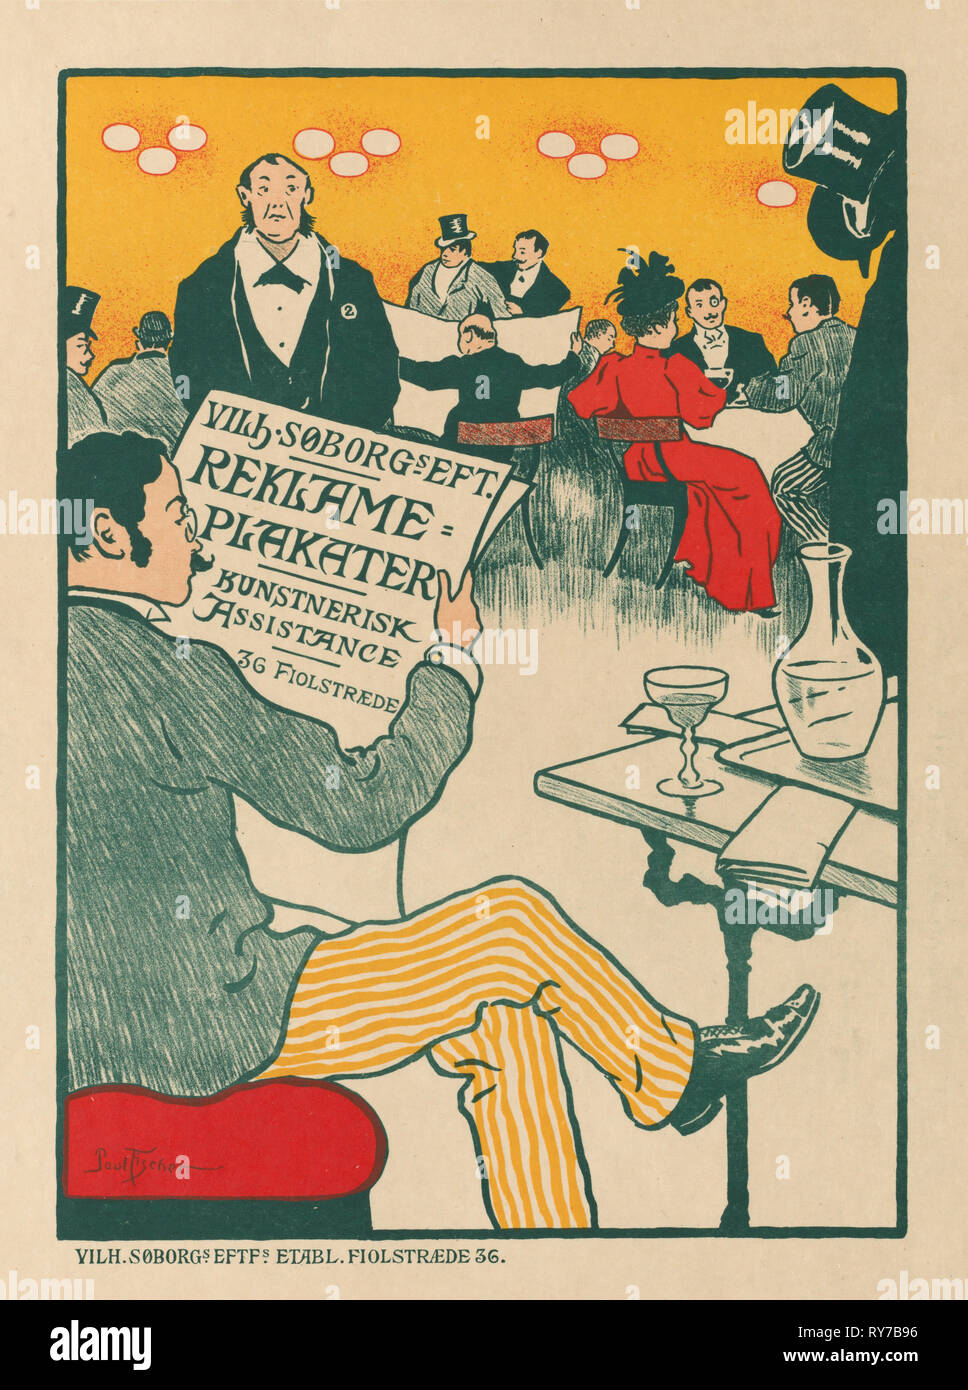 Masters of the Poster: Poster for Exhibition of Artistic Posters of Wilhelm Söborg , c. 1895. Paul Gustav Fischer (Danish, 1860-1934), Soborg, Copenhagen. Color lithograph; sheet: 39.9 x 28.9 cm (15 11/16 x 11 3/8 in.); image: 27.6 x 20 cm (10 7/8 x 7 7/8 in - Stock Image